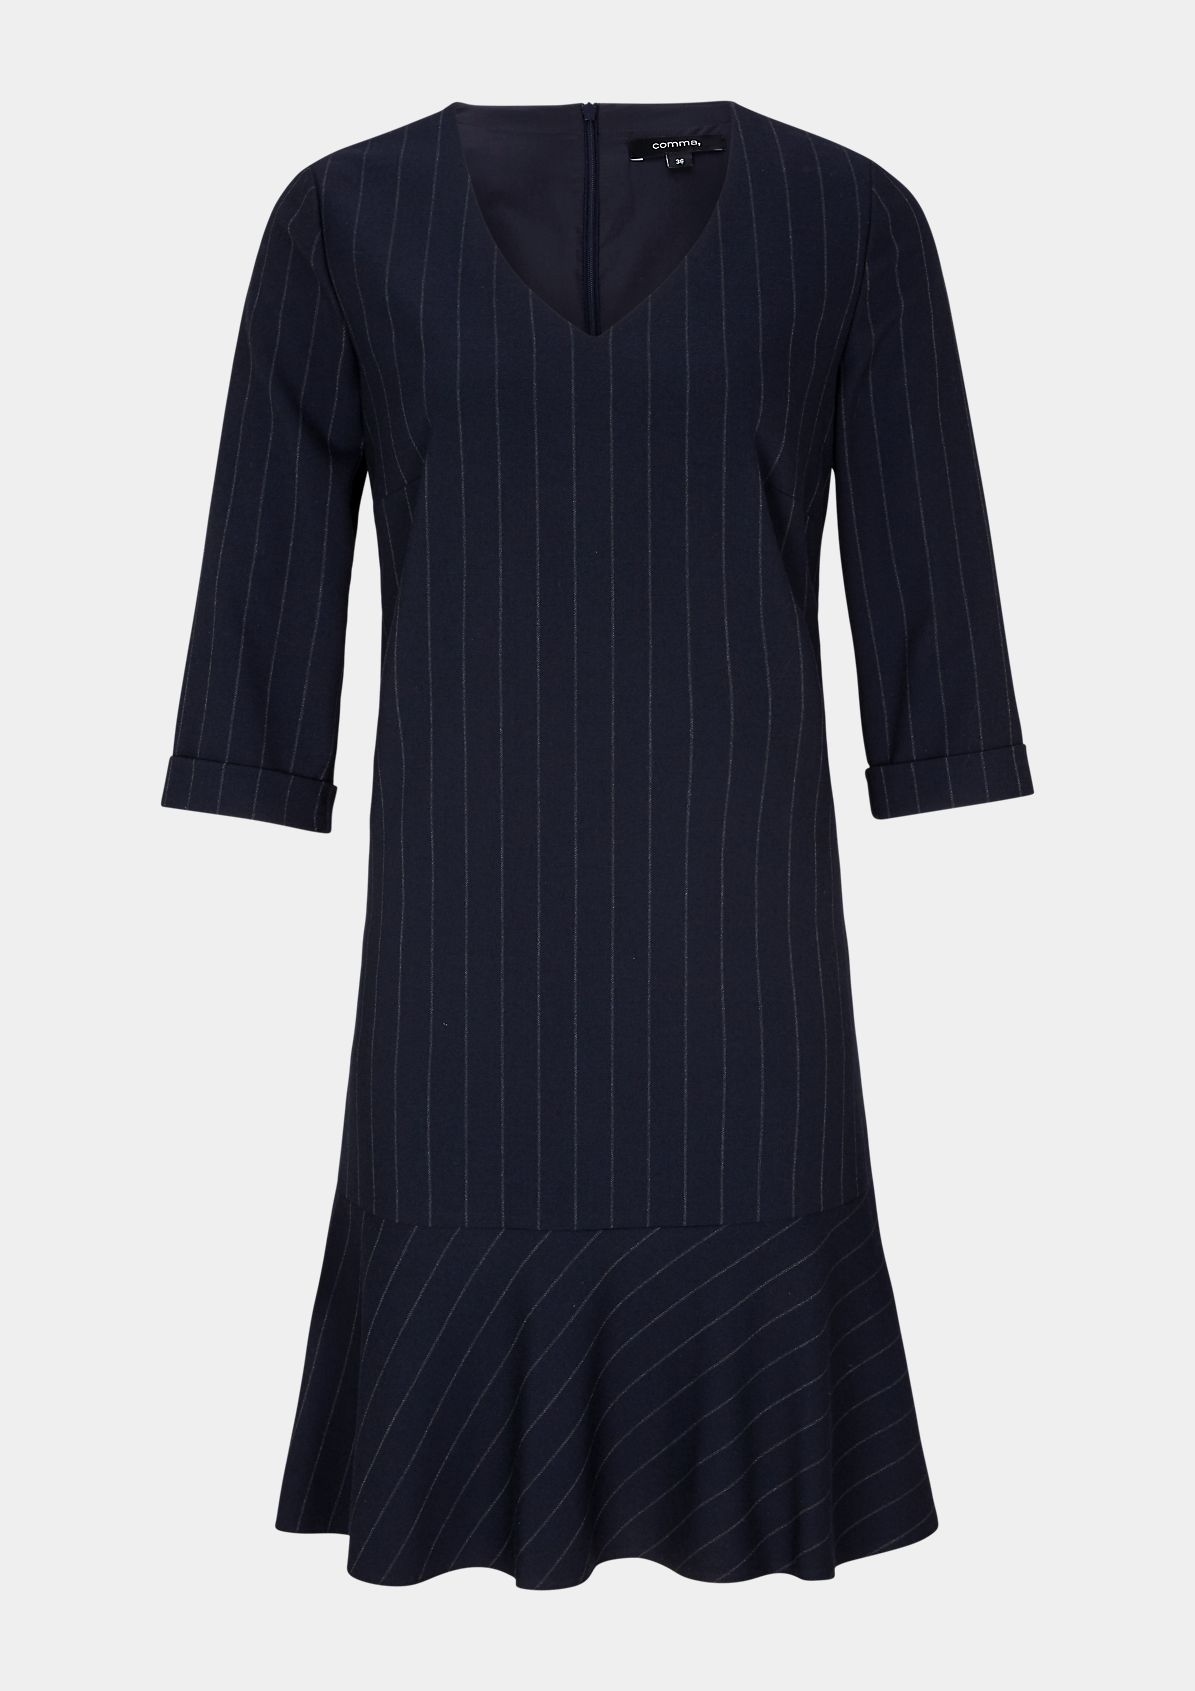 Business dress with classic pinstripe pattern from comma